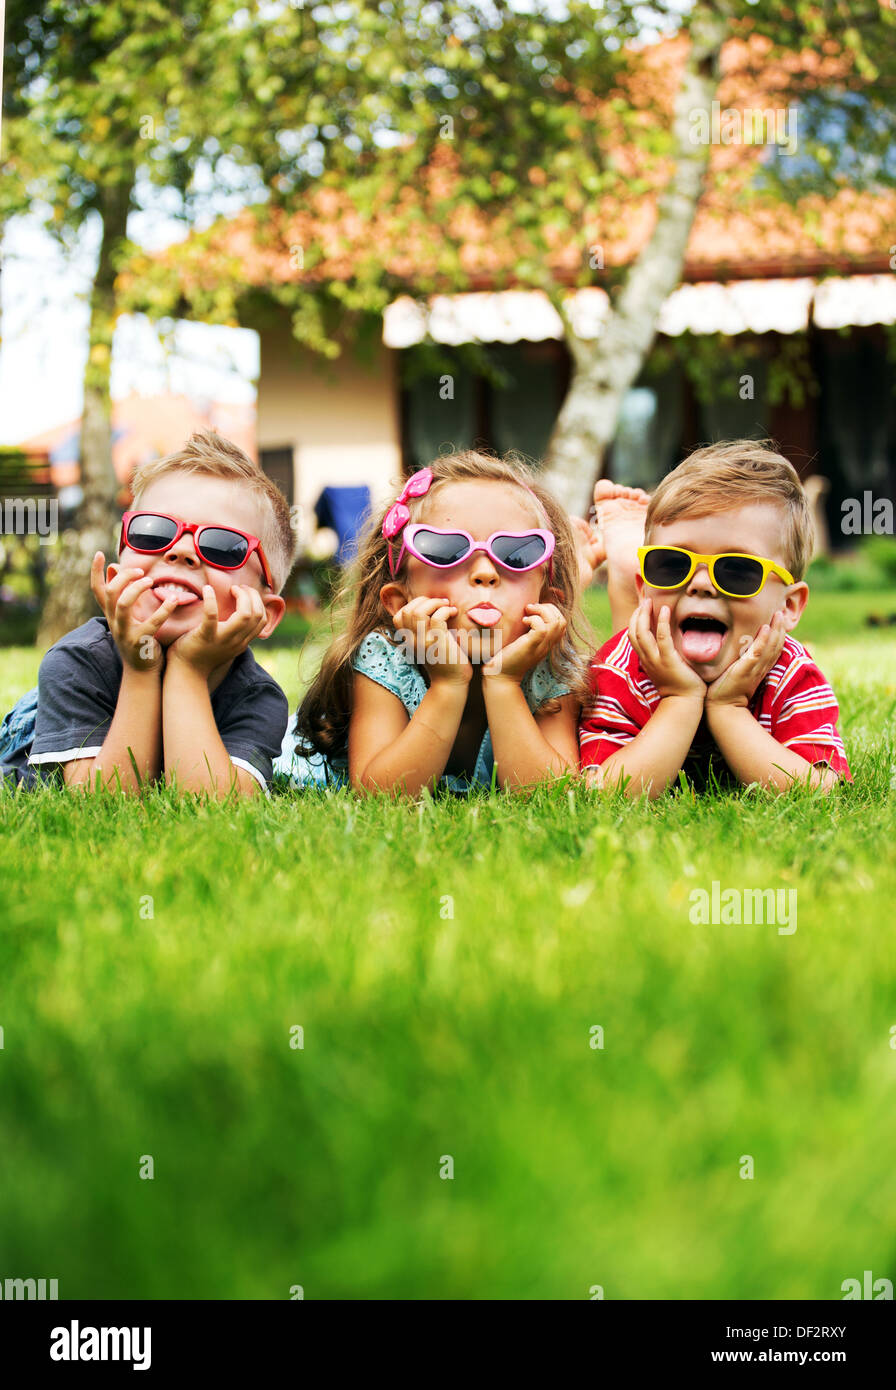 Trio children showing their tongues - Stock Image